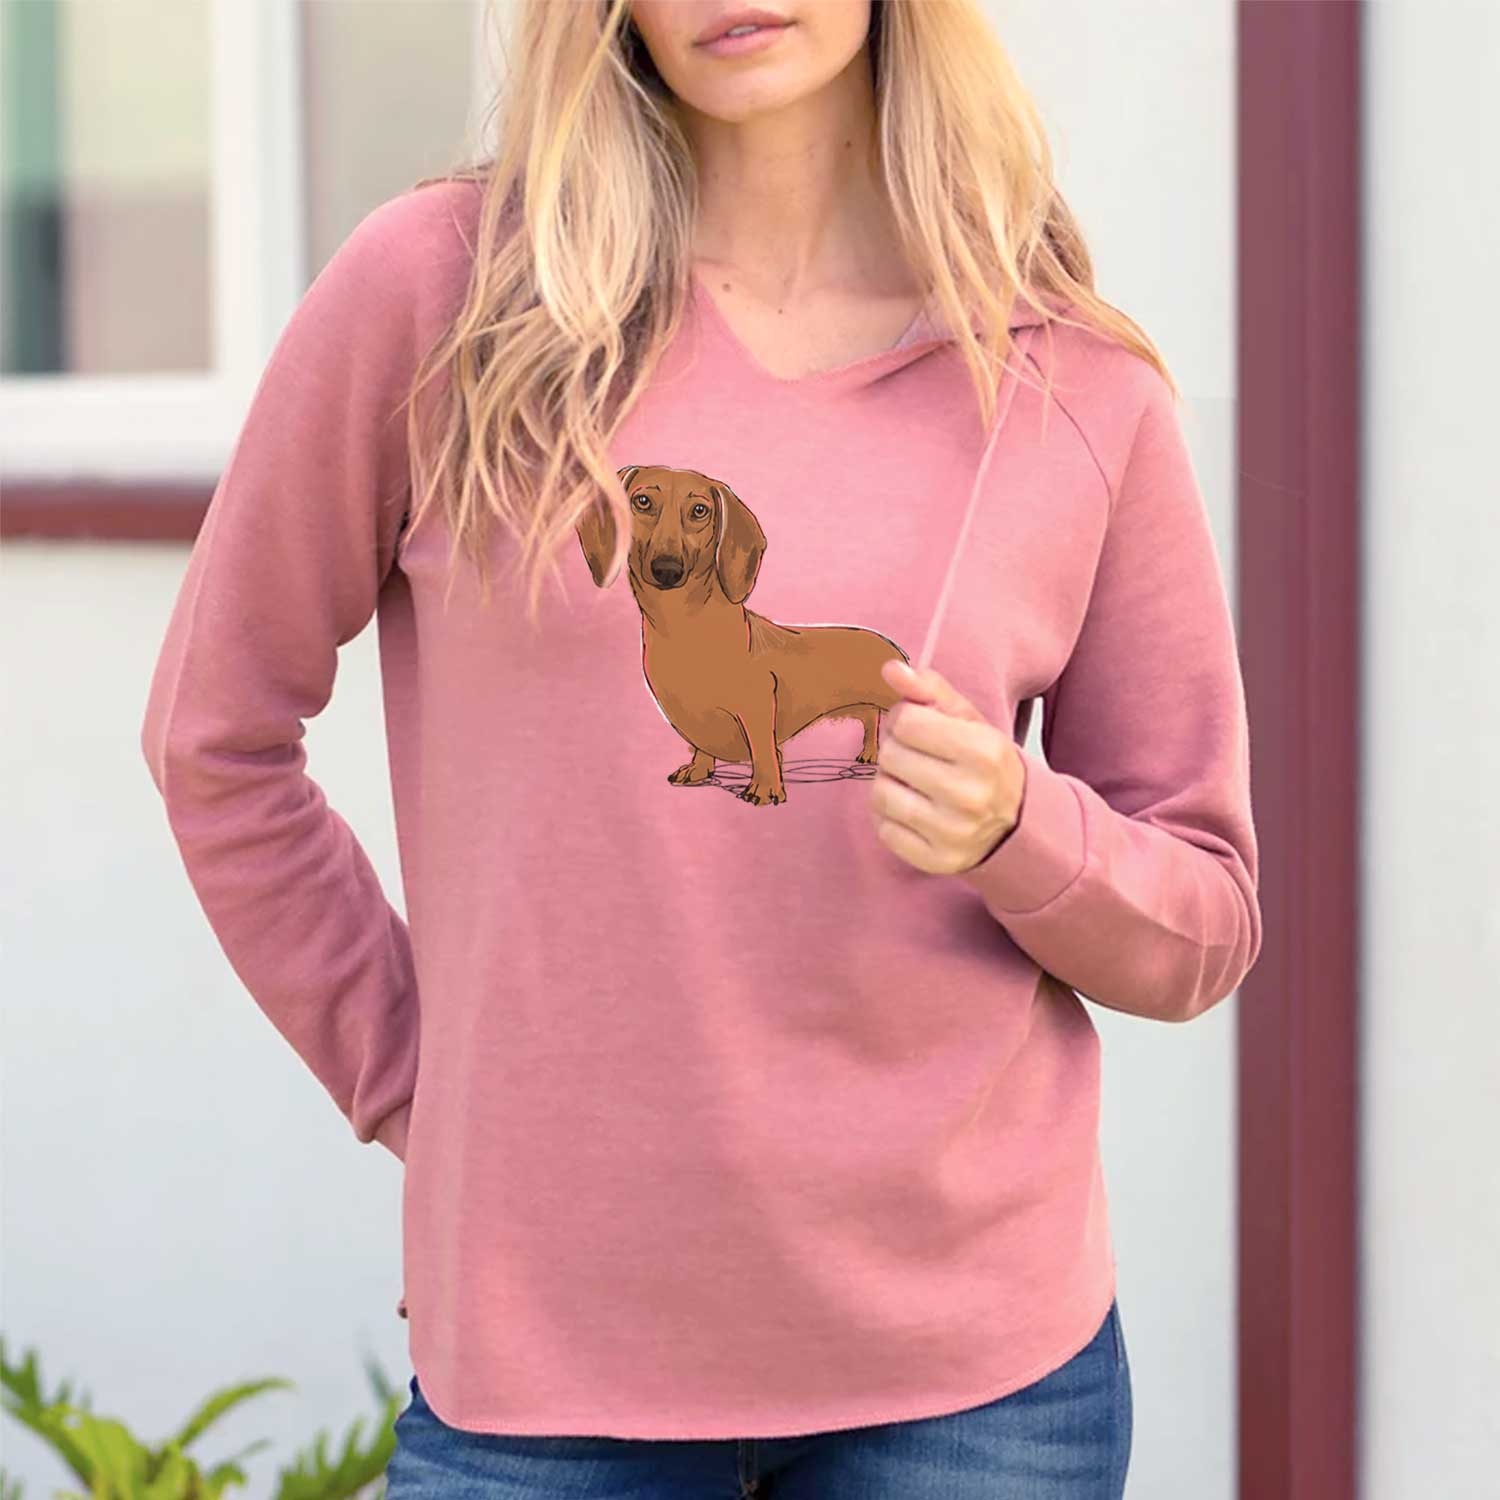 Freya the Dachshund - Cali Wave Hooded Sweatshirt